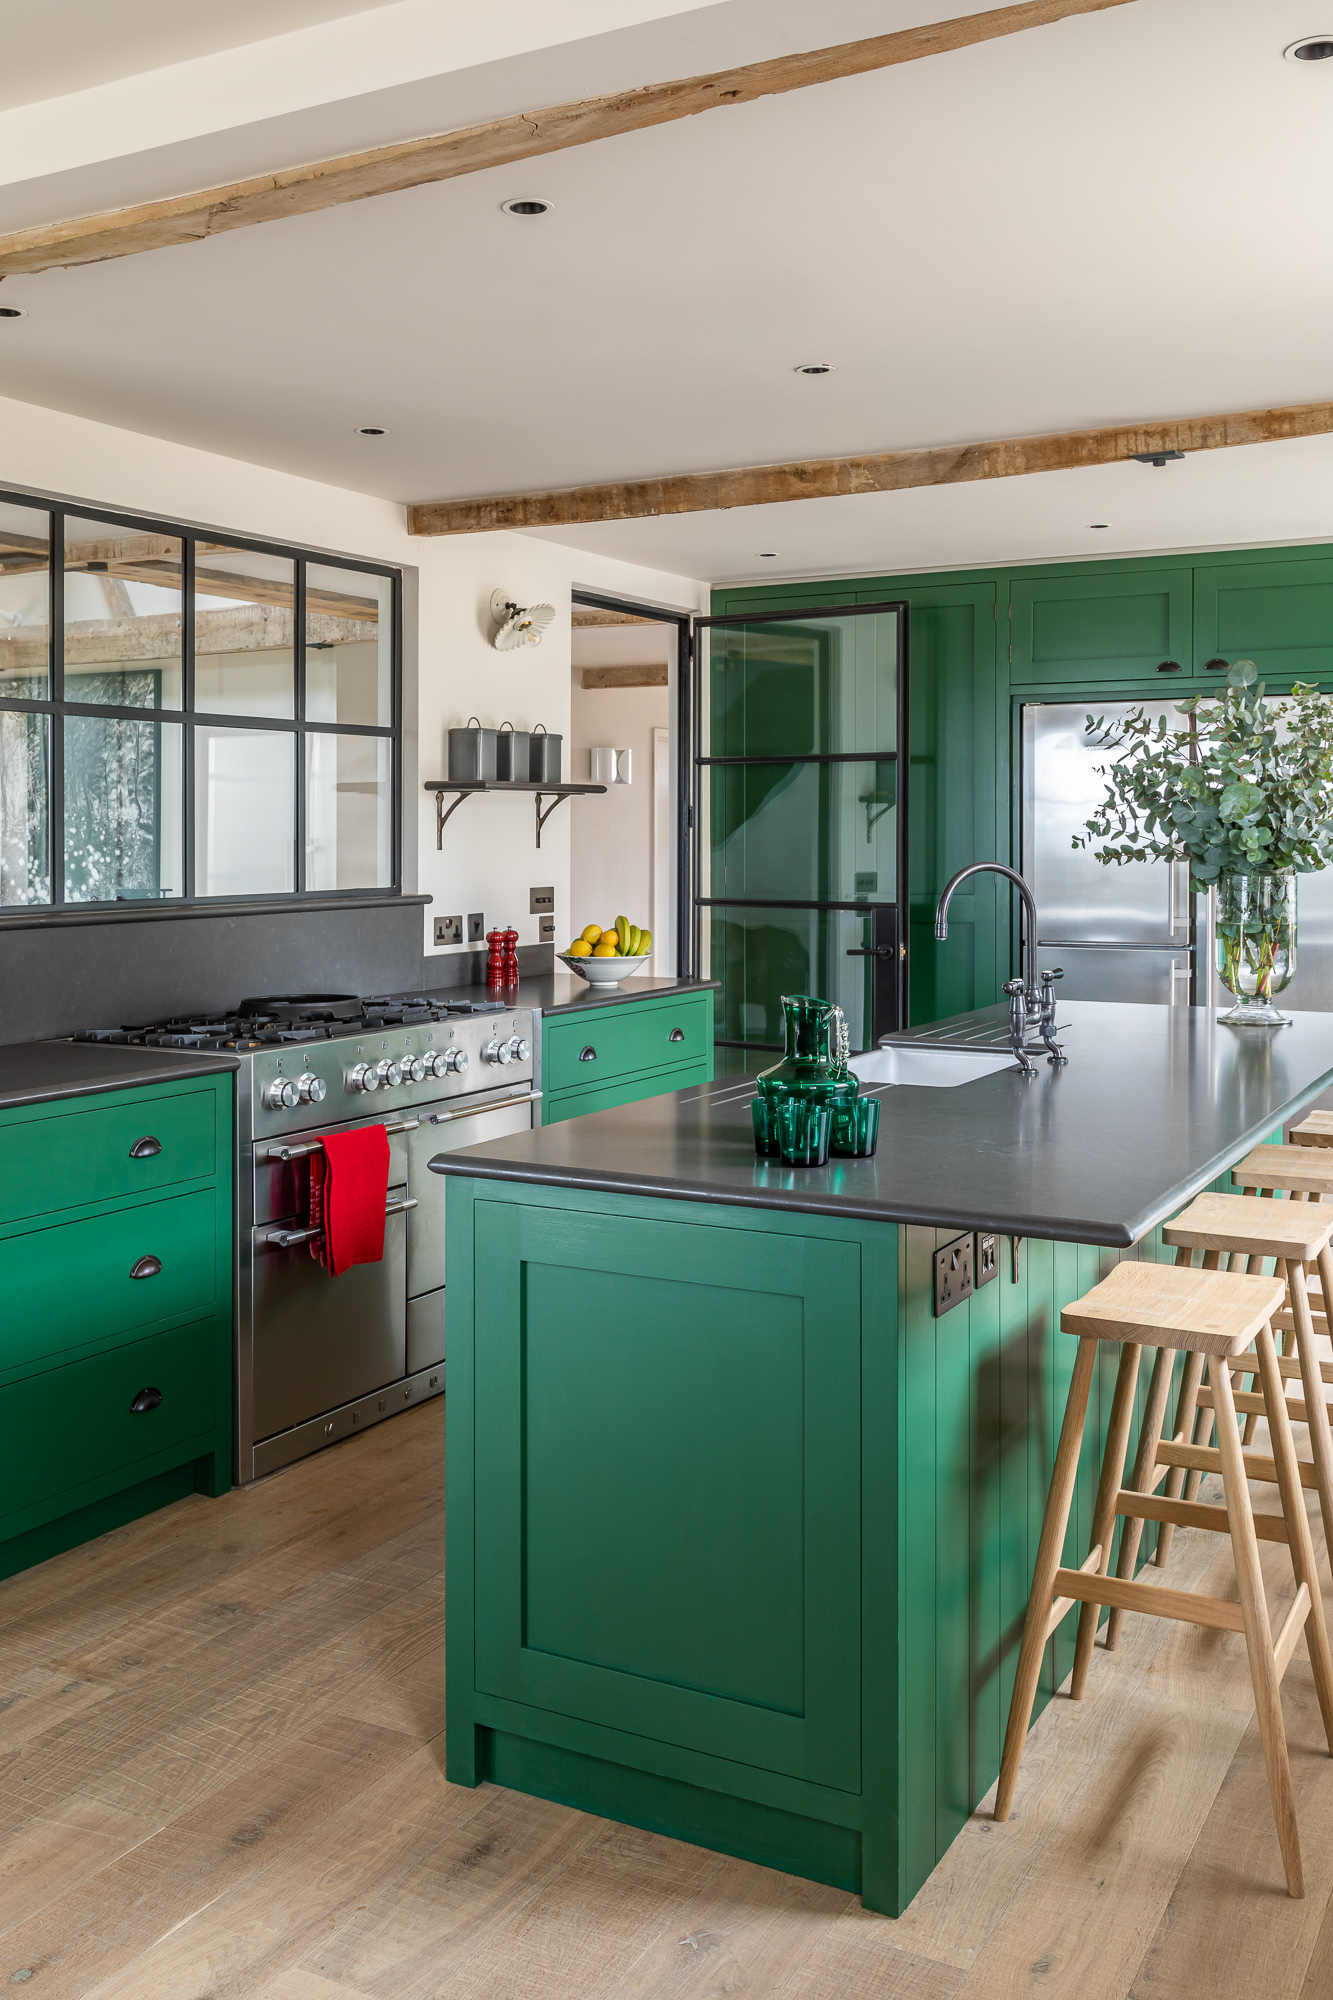 jonathan bond, interior photographer, kitchen island marnhull